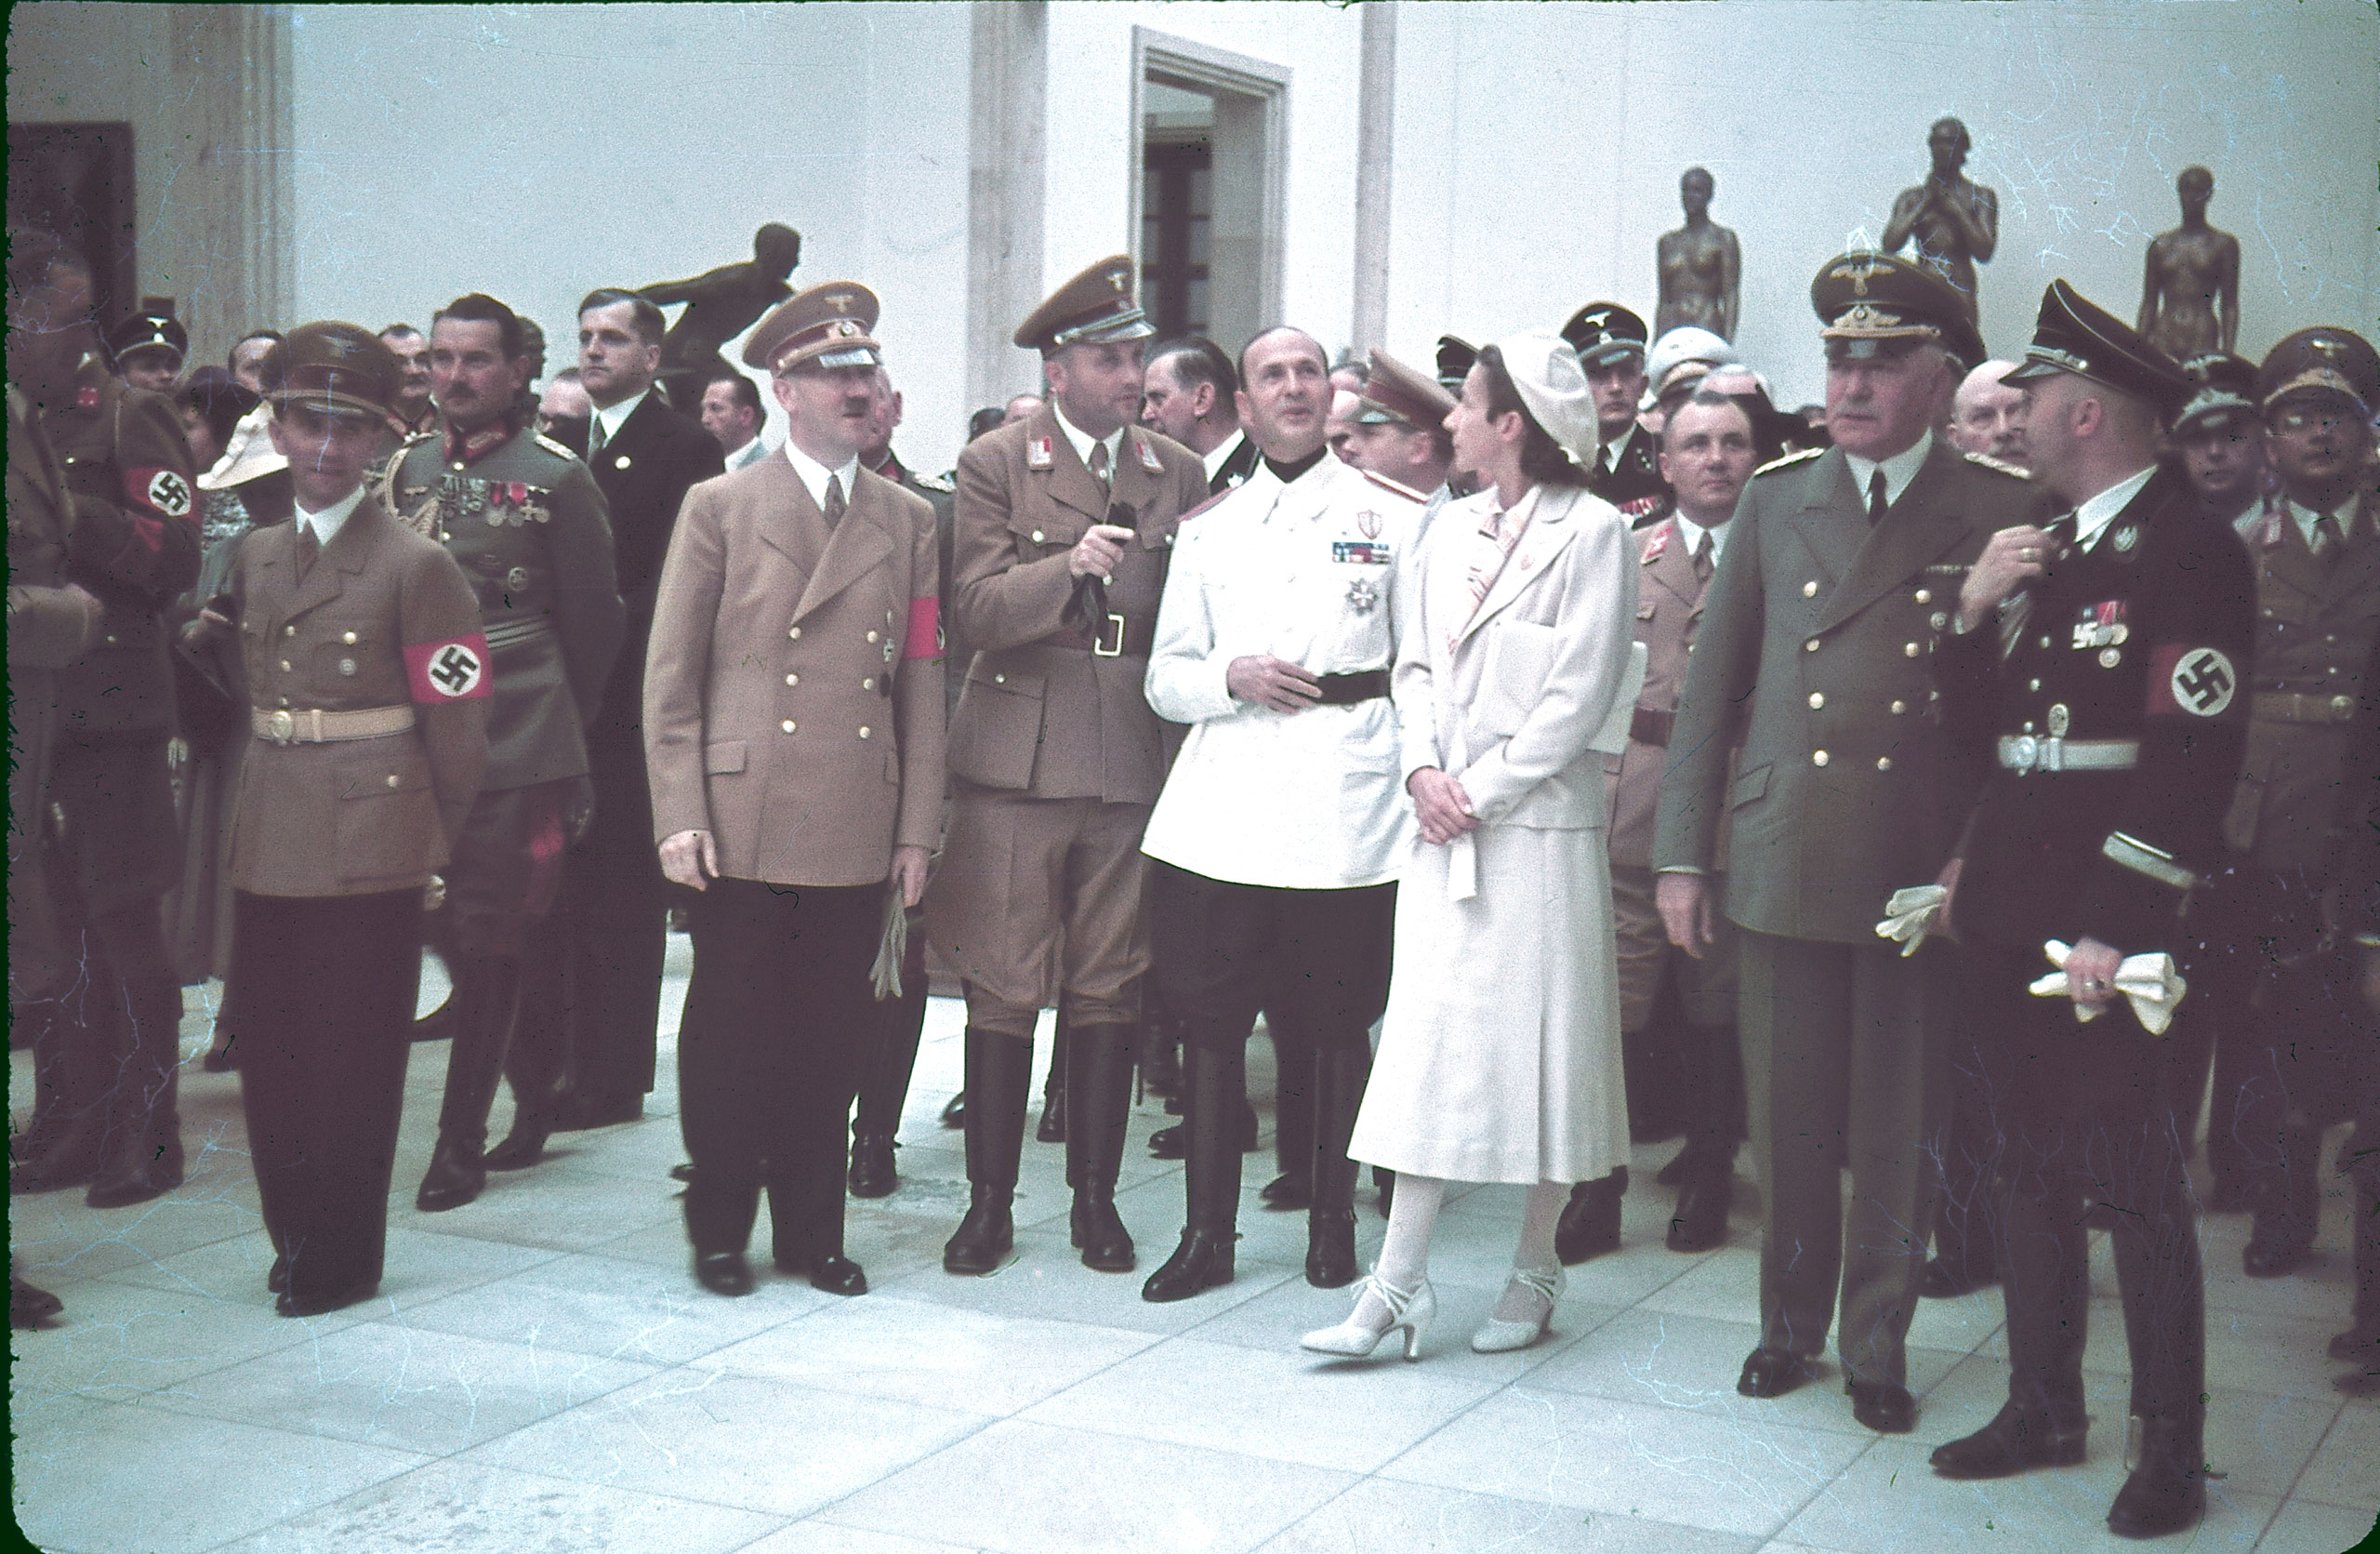 Joseph Goebbels, Eugen Ritter von Schobert, Adolf Hitler, Italian ambassador Dino Alfieri (in white jacket), architect Gerdy Troost, Martin Bormann (behind Troost), Heinrich Himmler (far right) and others at Munich's Haus der Kunst for the 1939  Day of German Art.